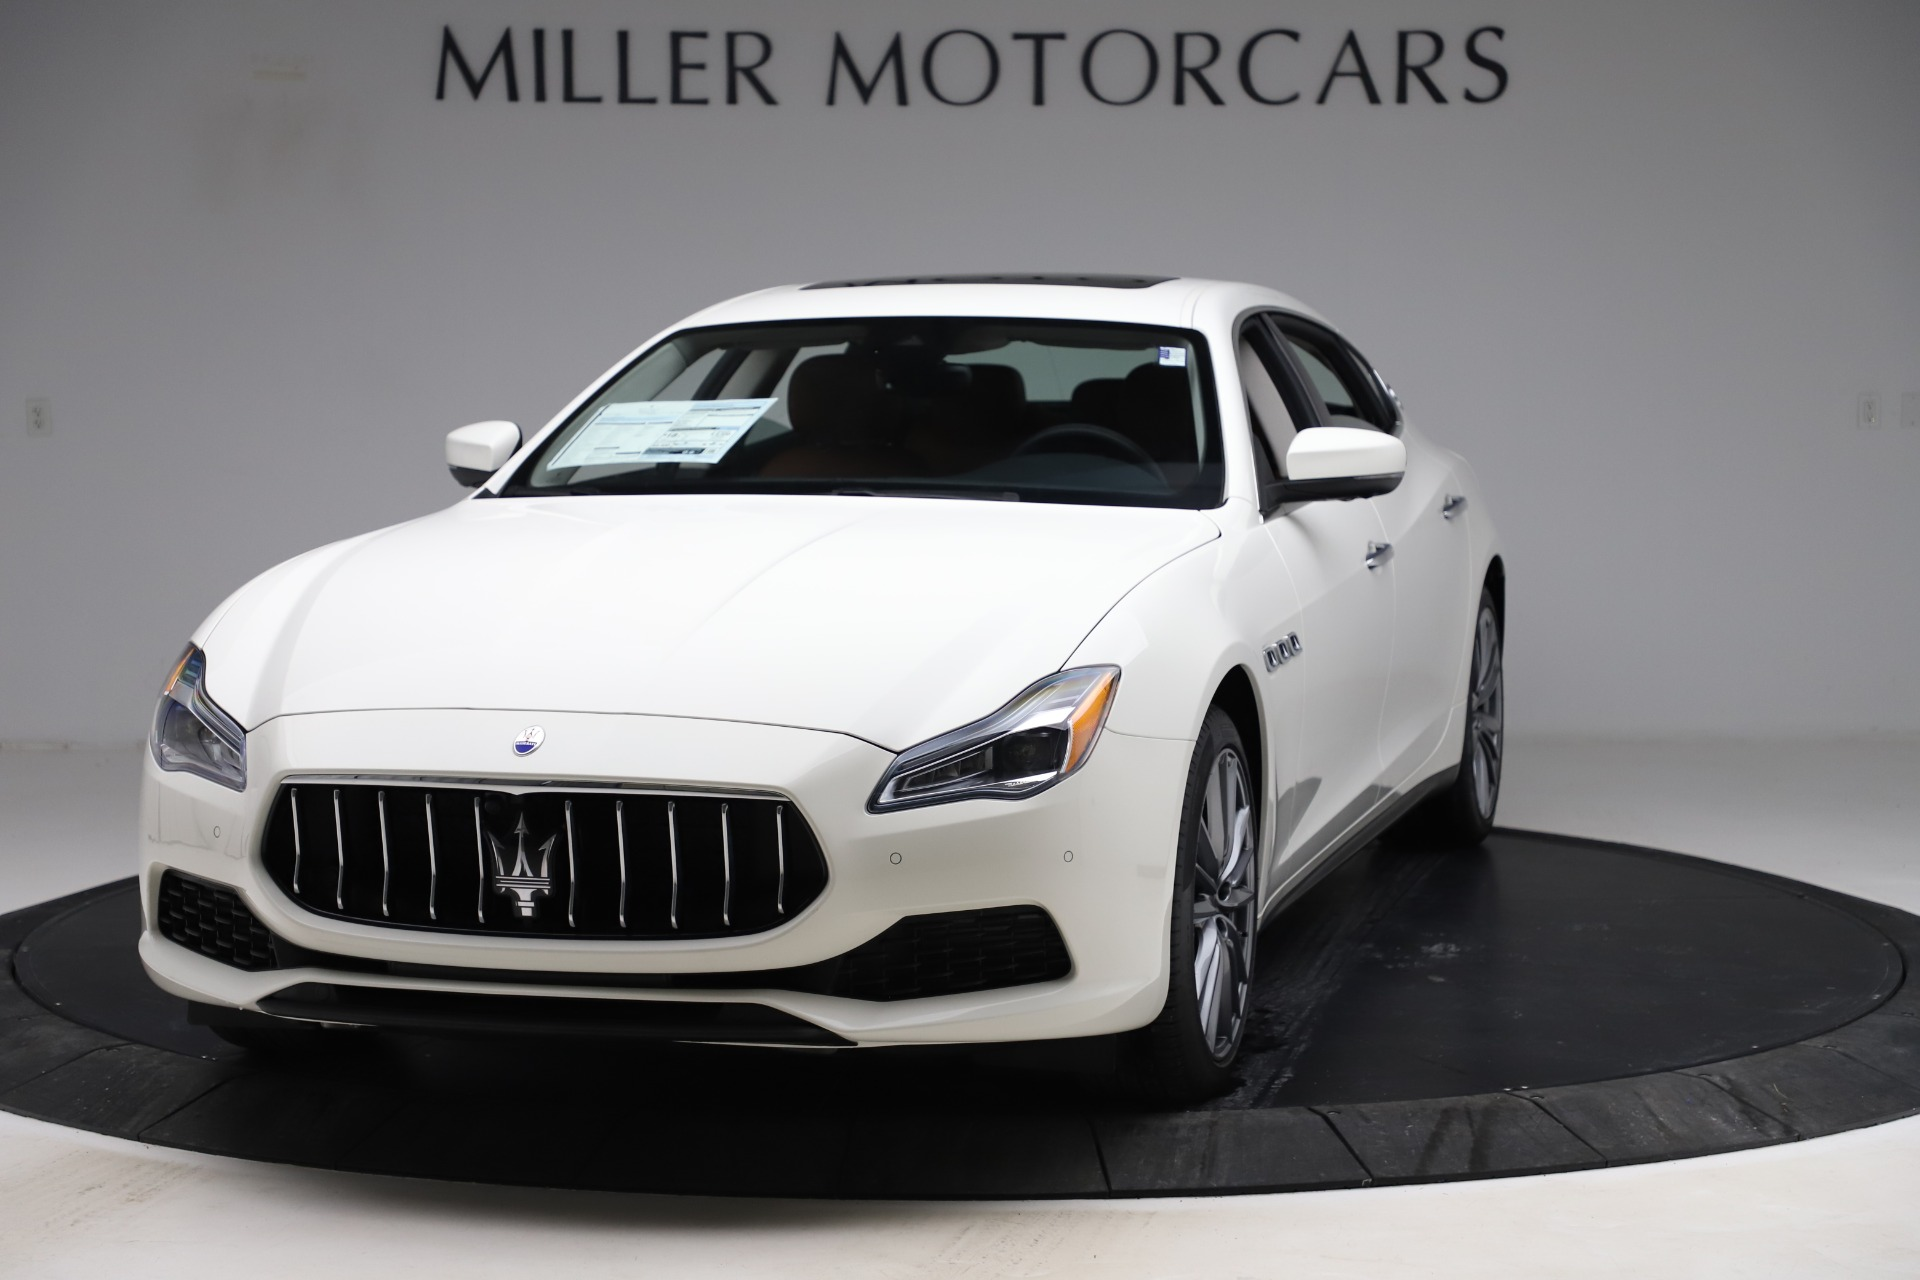 New 2020 Maserati Quattroporte S Q4 for sale Sold at Pagani of Greenwich in Greenwich CT 06830 1